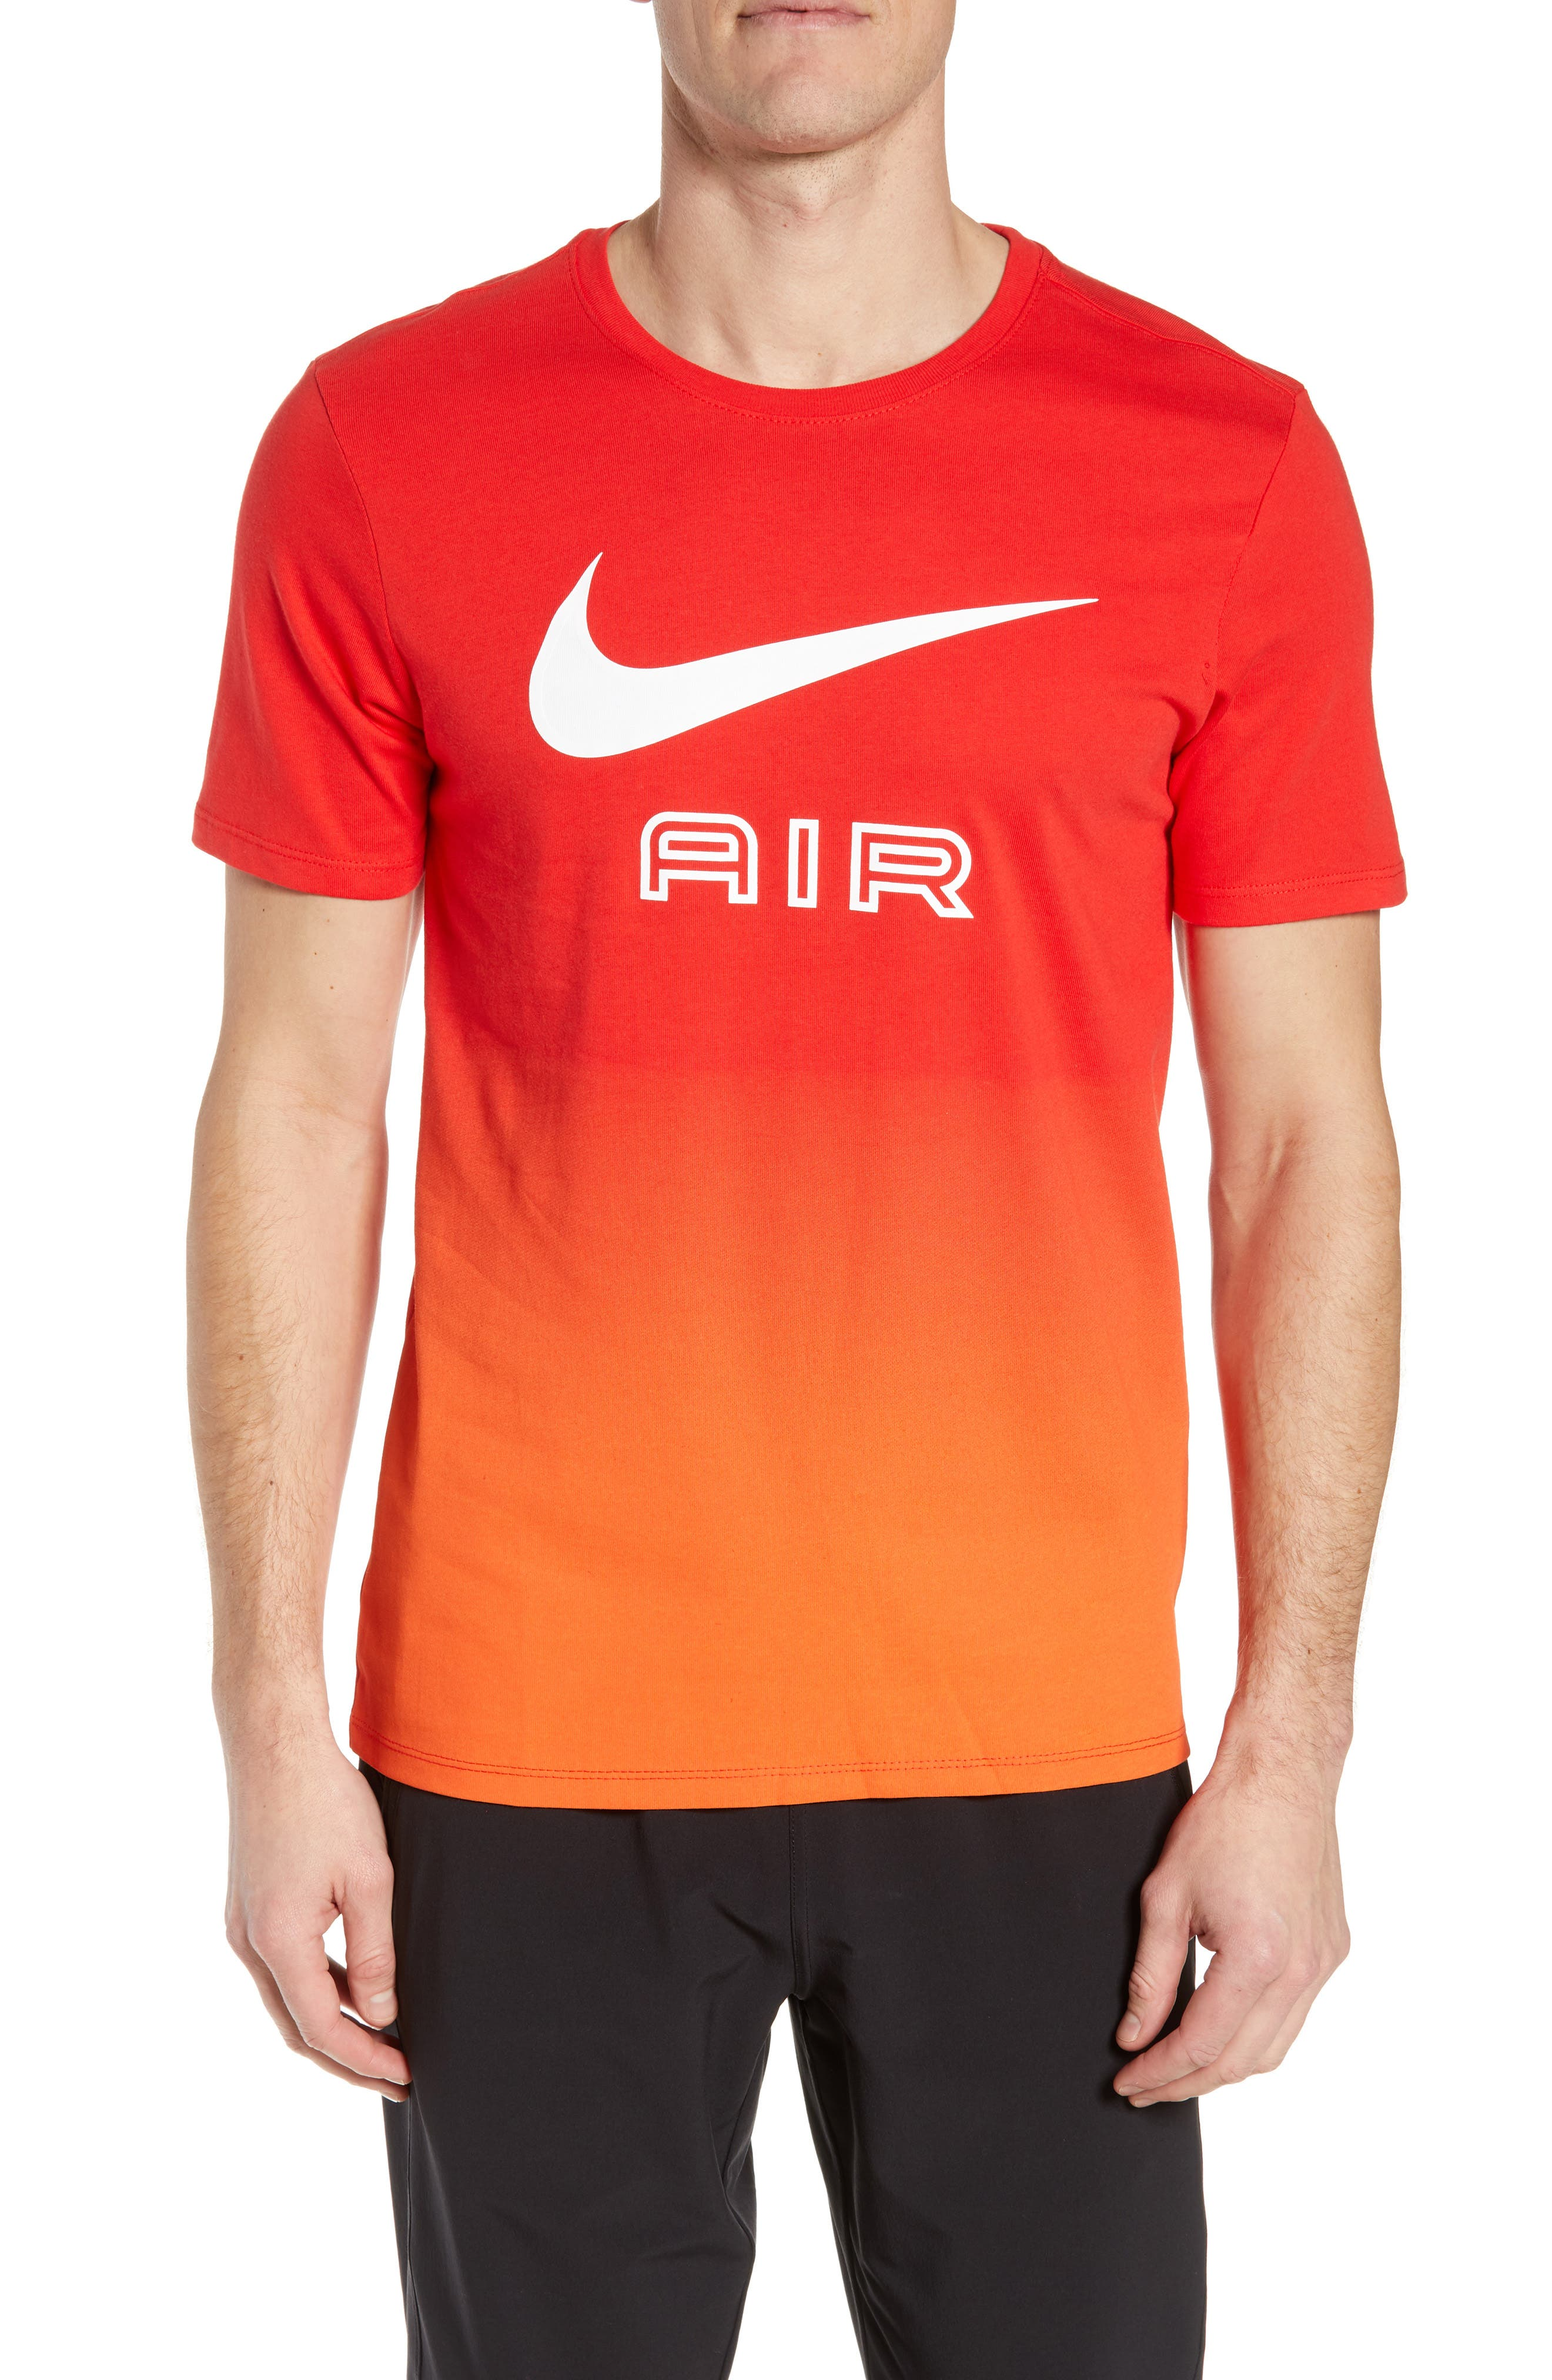 Nike Air Ombre Logo T-Shirt, Red